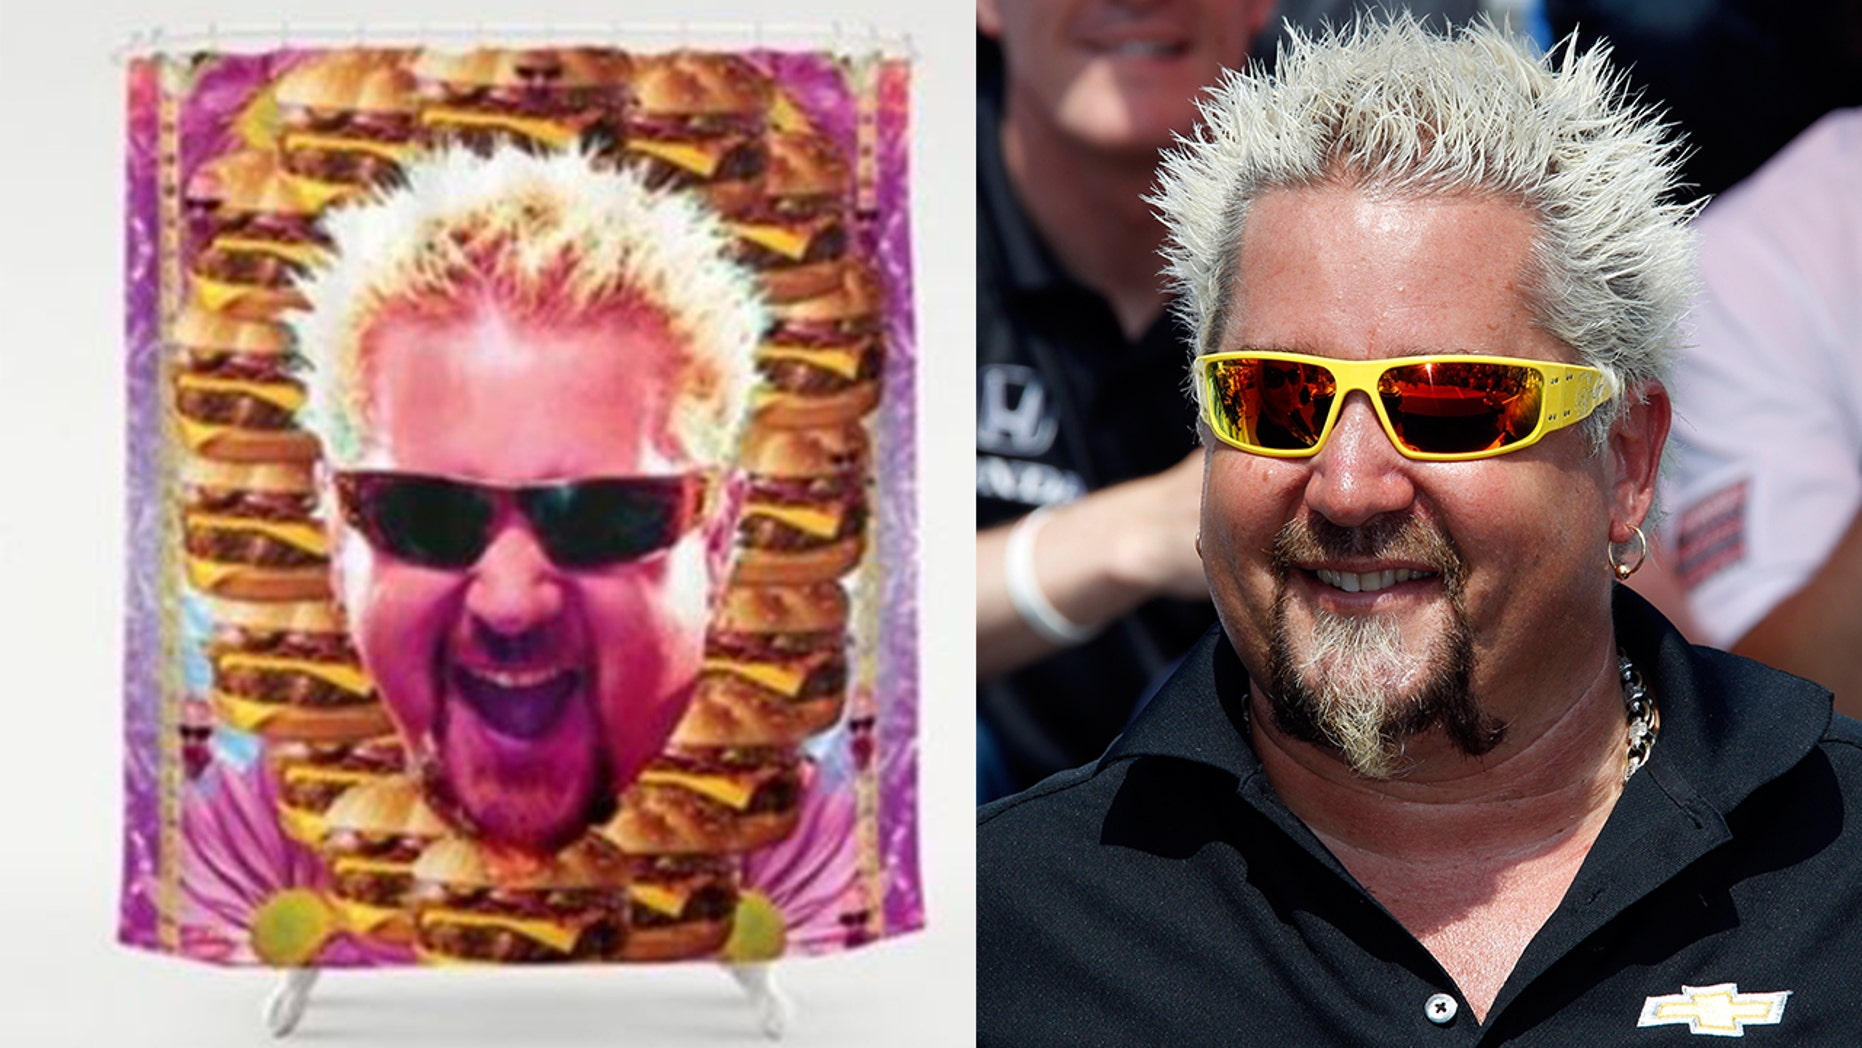 The mayor of Flavortown now comes in a shower curtain, as well as a variety of other household items.